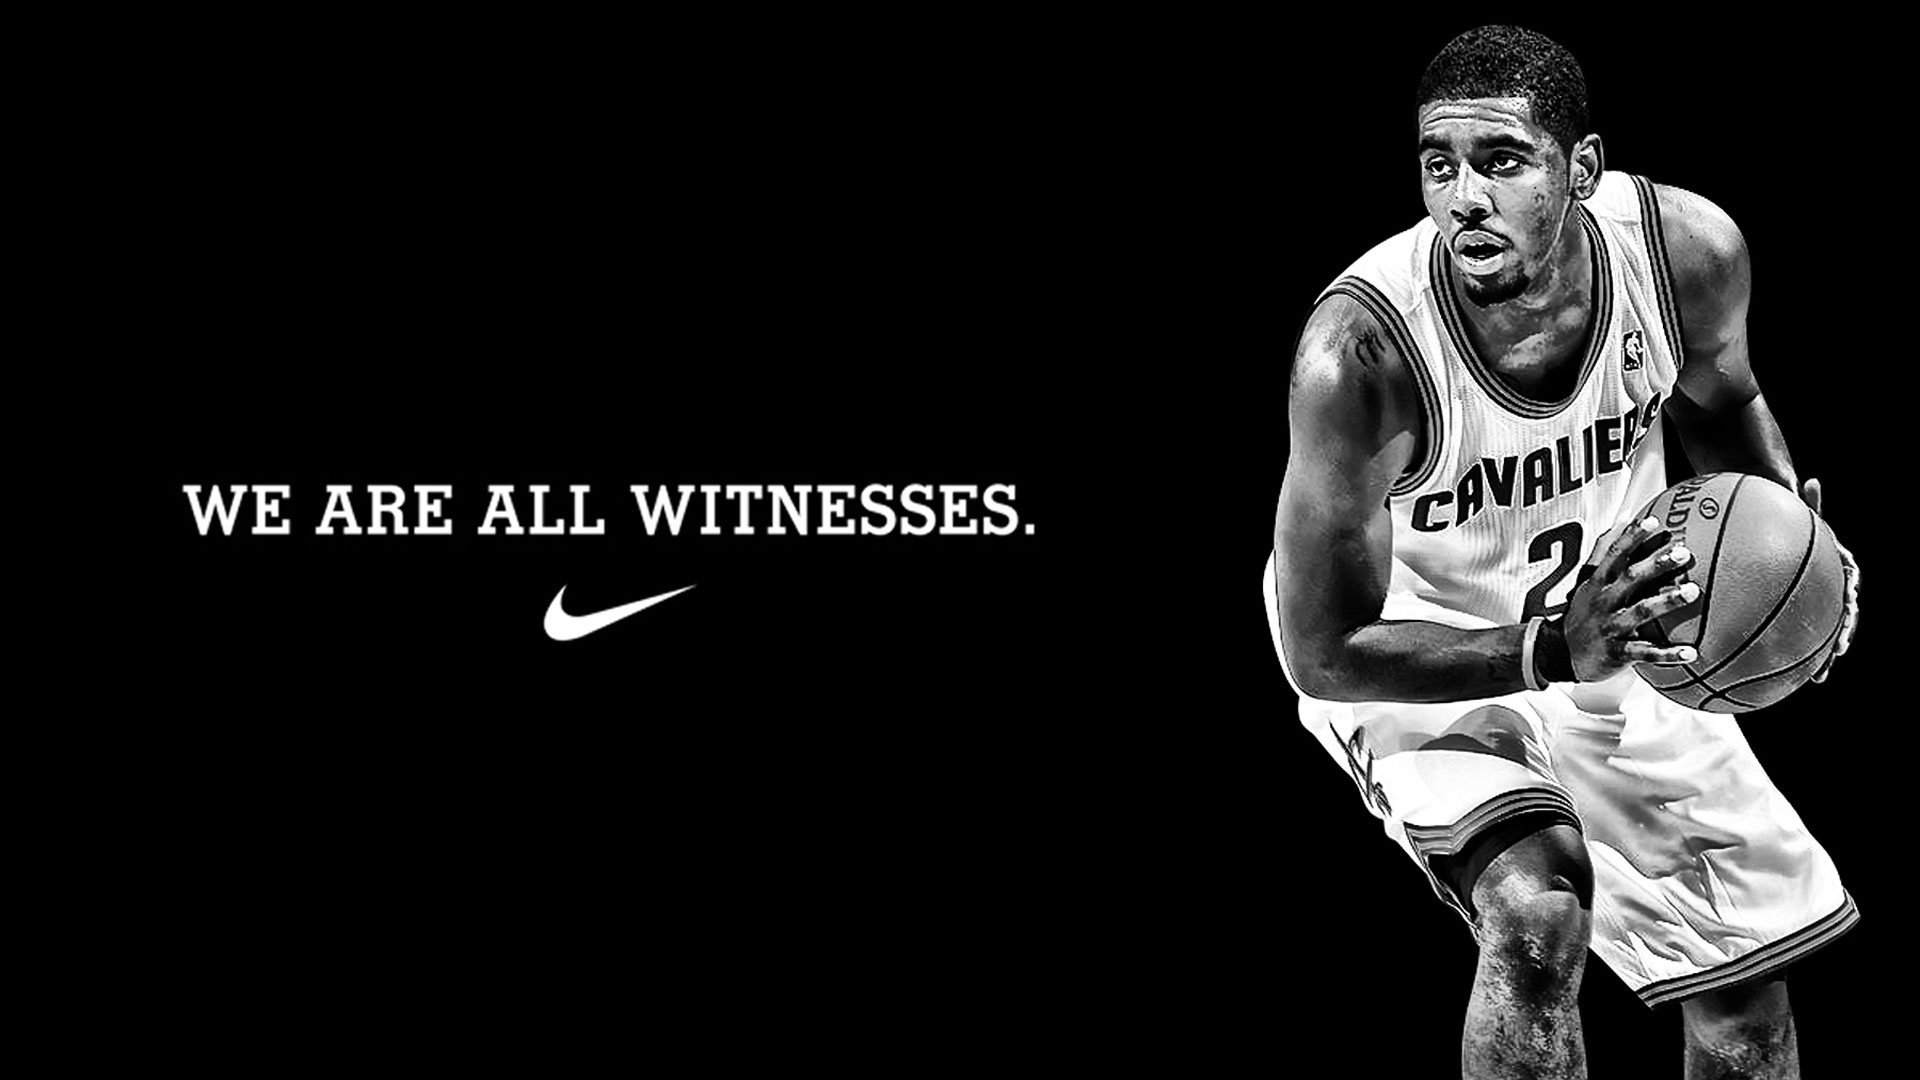 kyrie irving basketball hd wallpaper de sports hdwallpaper.com